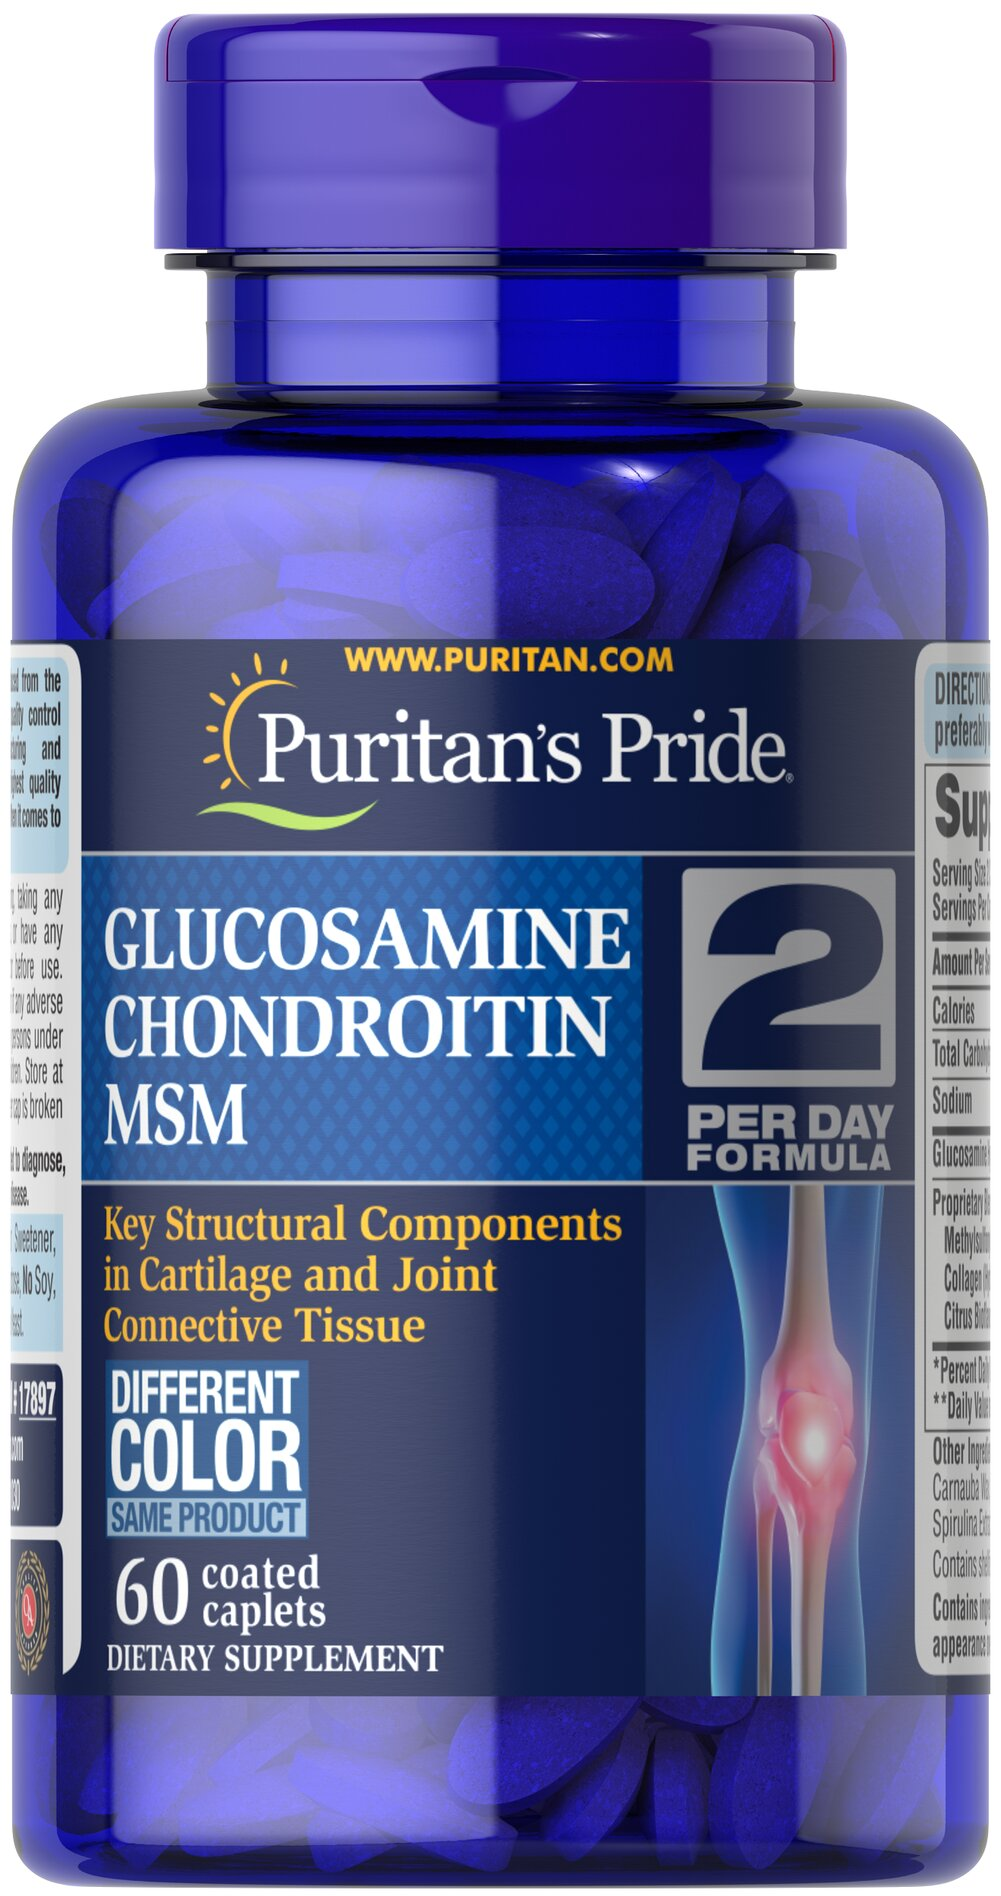 Triple Strength Glucosamine, Chondroitin & MSM Joint Soother® <p>Lubricates joints to improve flexibility**</p><p>Supports connective tissue in and around the joints**</p><p>Encourages joint comfort**</p><p>Triple Strength Glucosamine, Chondroitin and MSM is the most powerful joint soother yet!** Just two caplets per day will give you triple strength protection with 1500 mg of Glucosamine, and 1700 mg of our joint nourishing proprietary blend.**